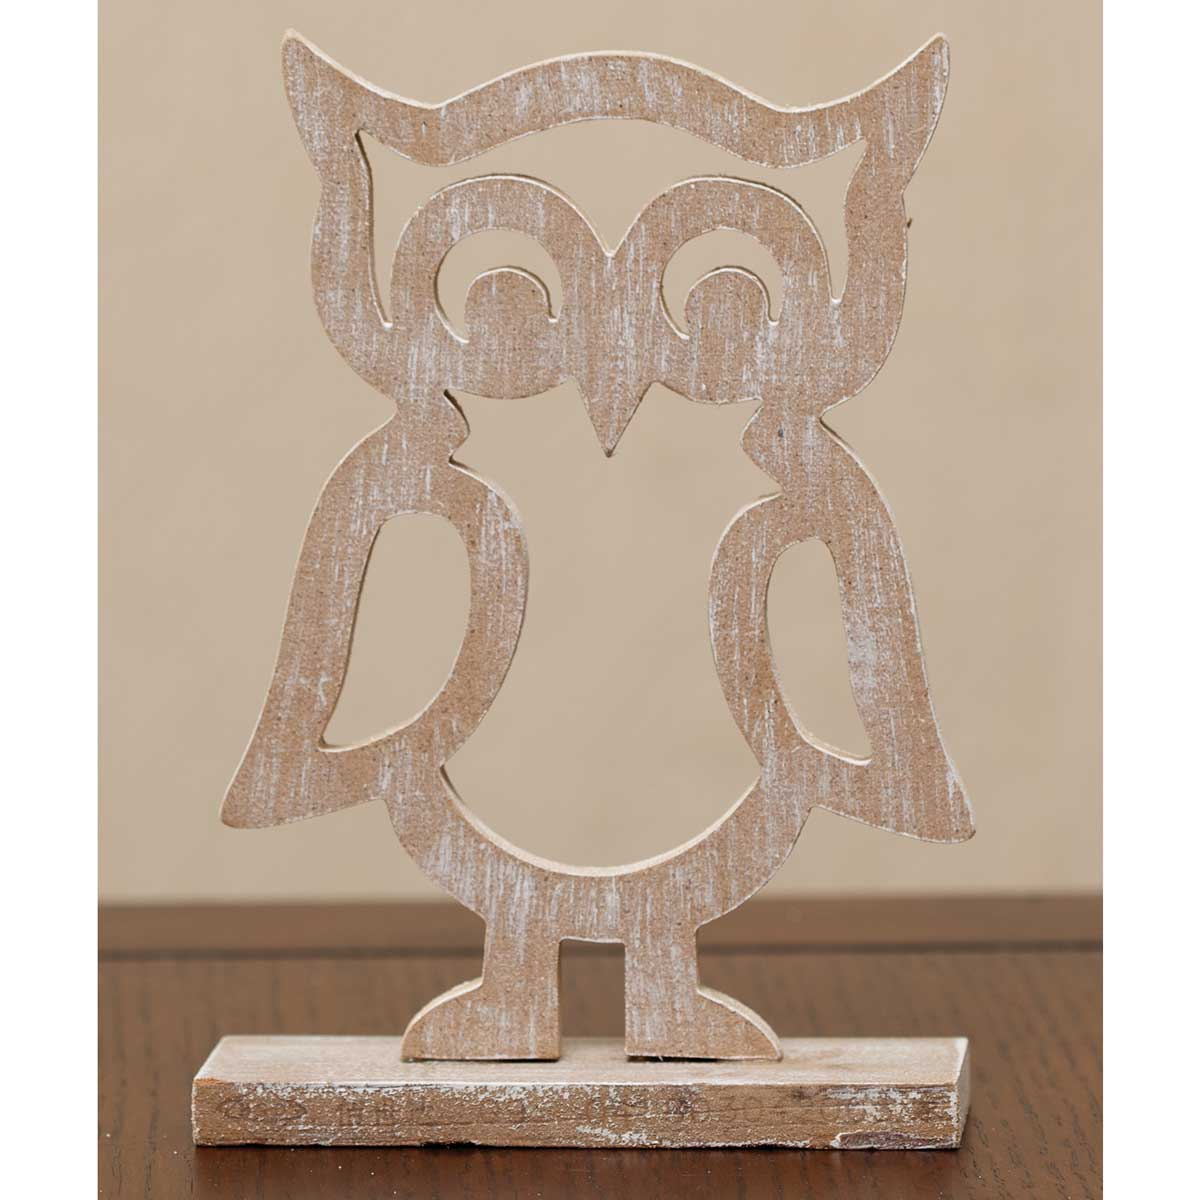 "WOOD CUTOUT OWL 4.5""X6.25"""